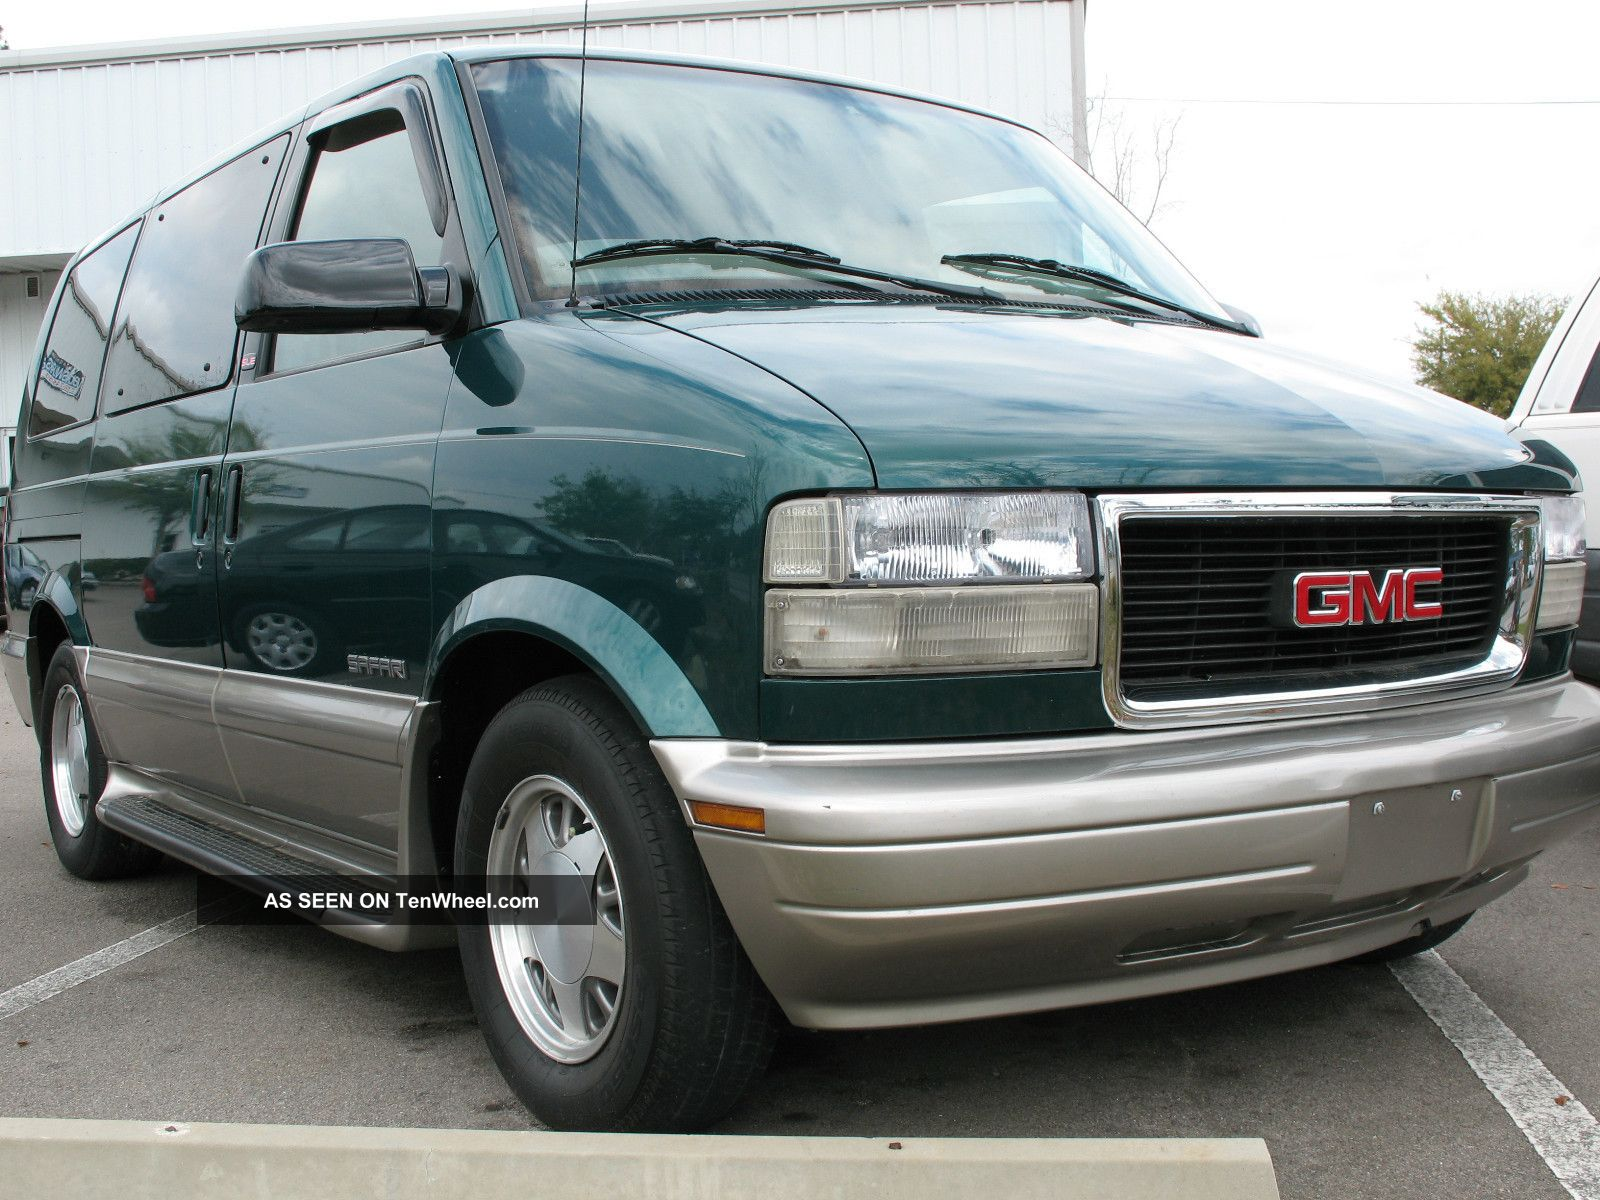 1999 gmc safari fuse diagram 1999 automotive wiring diagrams 2001 gmc safari sle extended penger van 3 door 4 3l 12 lgw gmc safari fuse diagram 2001 gmc safari sle extended penger van 3 door 4 3l 12 lgw